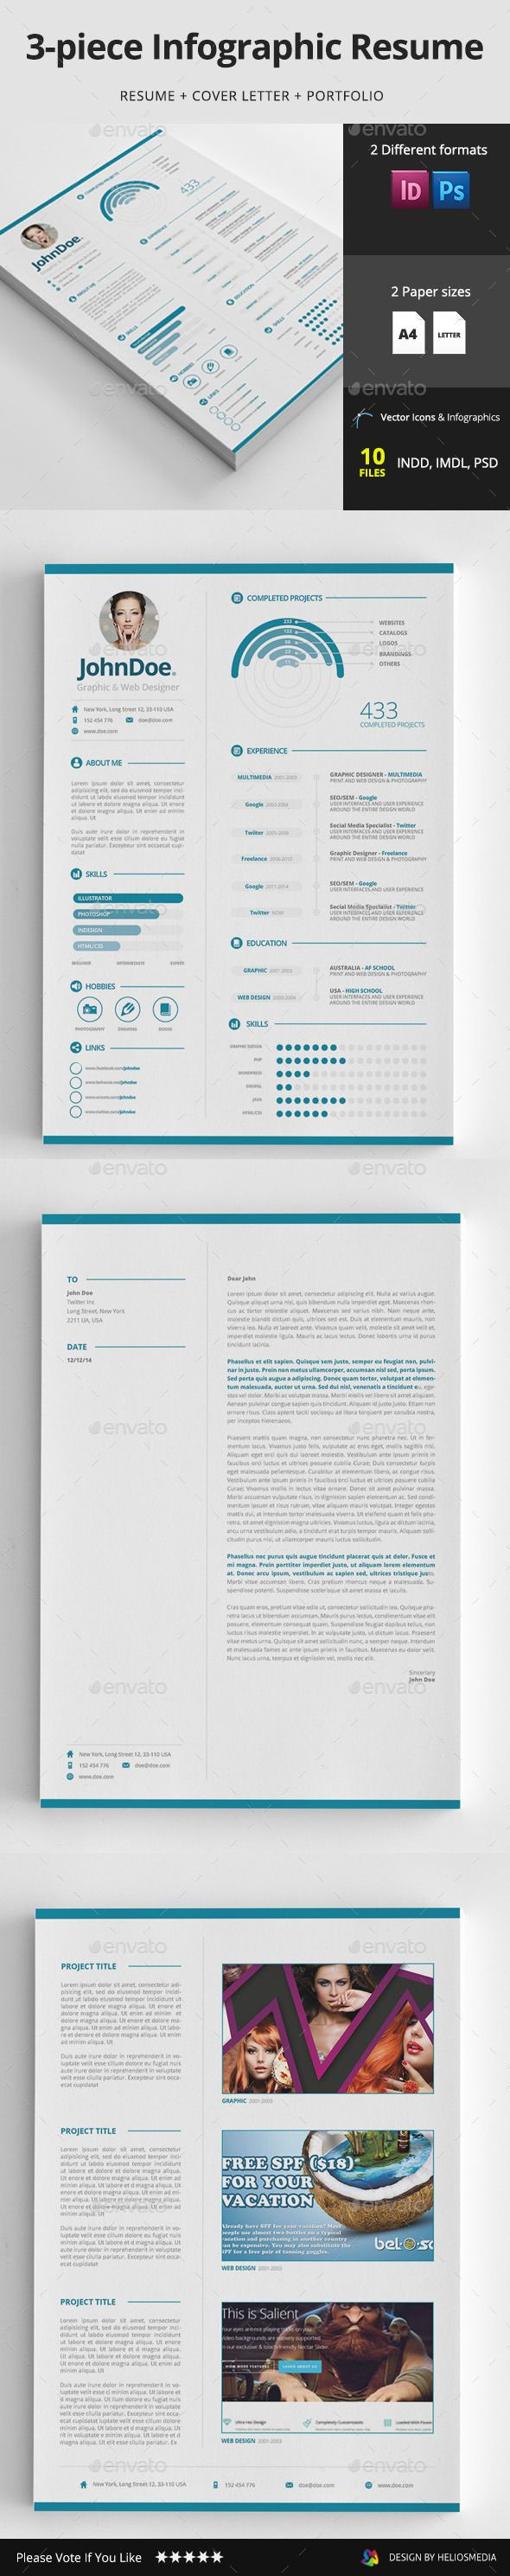 Unusual 1 Year Experience Resume Format For Dot Net Tiny 1.5 Inch Hexagon Template Shaped 100 Template 1099 Excel Template Old 1099 Misc Form Template Dark12 Inch Ruler Template 25  Best Ideas About Infographic Resume On Pinterest | Cv ..